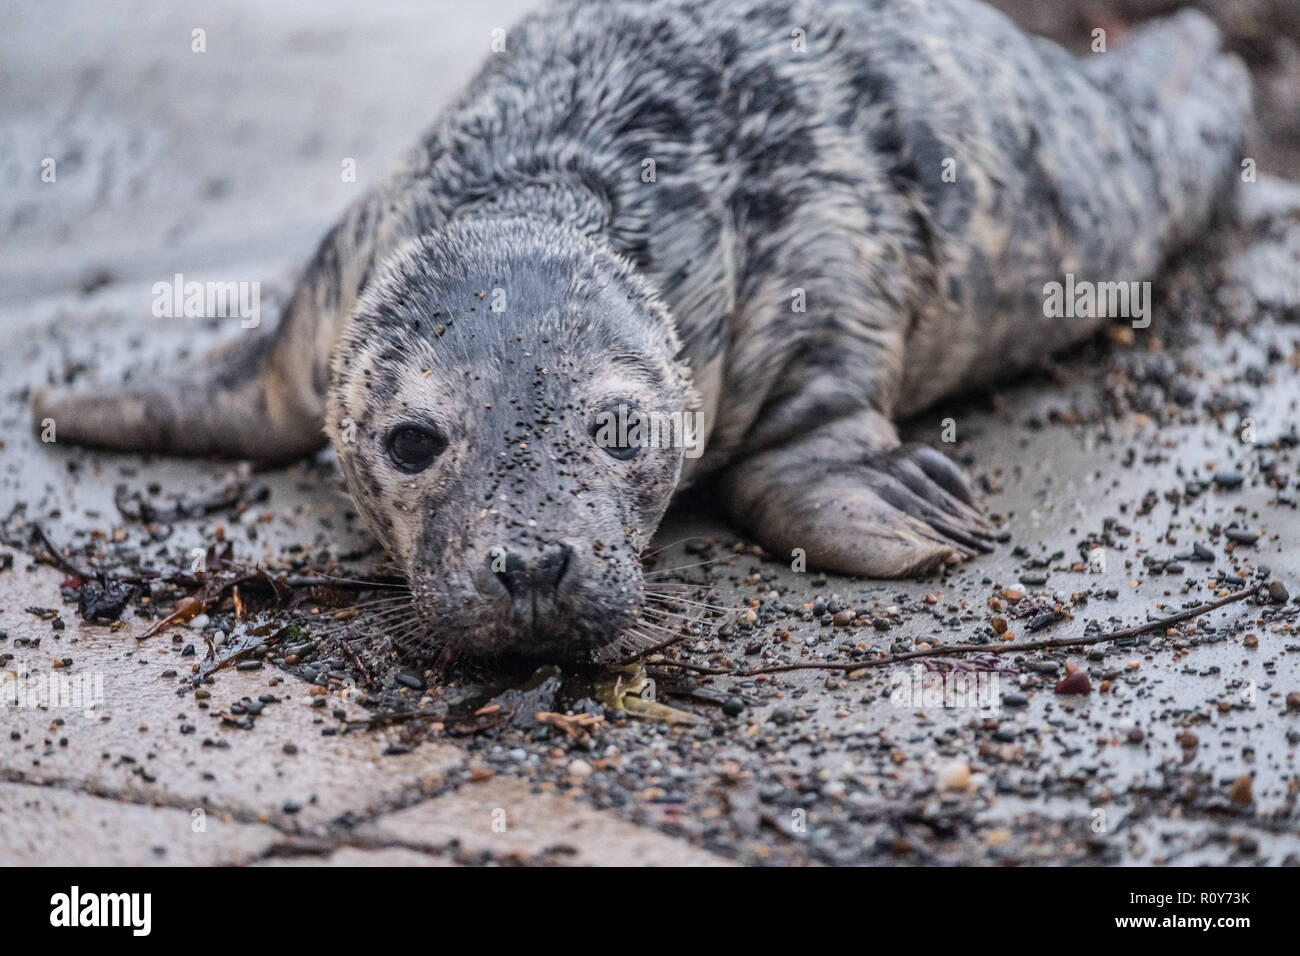 Aberystwyth Wales UK, November 7th 2018 A young Atlantic seal pup has been washed up by the storms onto the beach at Aberystwyth on the Cardigan Bay coast of west wales. Crowds of concerned onlookers soon gathered to take photographs and to try to prevent it from crawling over the promenade and into the paths of passing vehicles. As darkness feel the pup, which is apparently fully weaned and able to feed itself, was hunkered down on the beach as the tide came in. Experts from the British Divers Marine Life Rescue (BDMLR) team then rescued the pup. Photo credit: Keith Morris / Alamy Live News - Stock Image